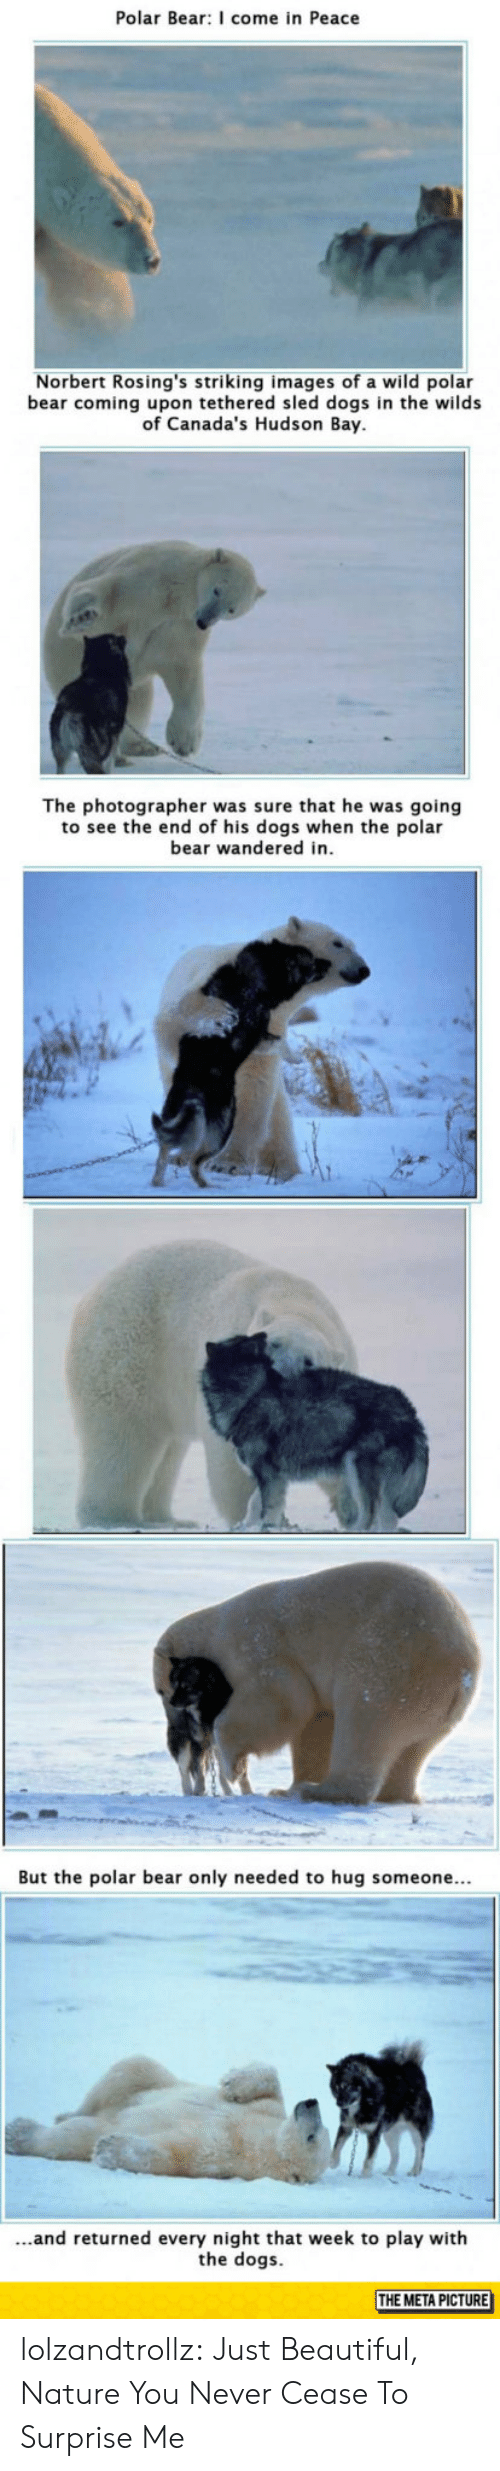 Beautiful, Dogs, and Tumblr: Polar Bear: I come in Peace  Norbert Rosing's striking images of a wild polar  bear coming upon tethered sled dogs in the wilds  of Canada's Hudson Bay  The photographer was sure that he was going  to see the end of his dogs when the polar  bear wandered in  But the polar bear only needed to hug someone...  ...and returned every night that week to play with  the dogs  THE META PICTURE lolzandtrollz:  Just Beautiful, Nature You Never Cease To Surprise Me